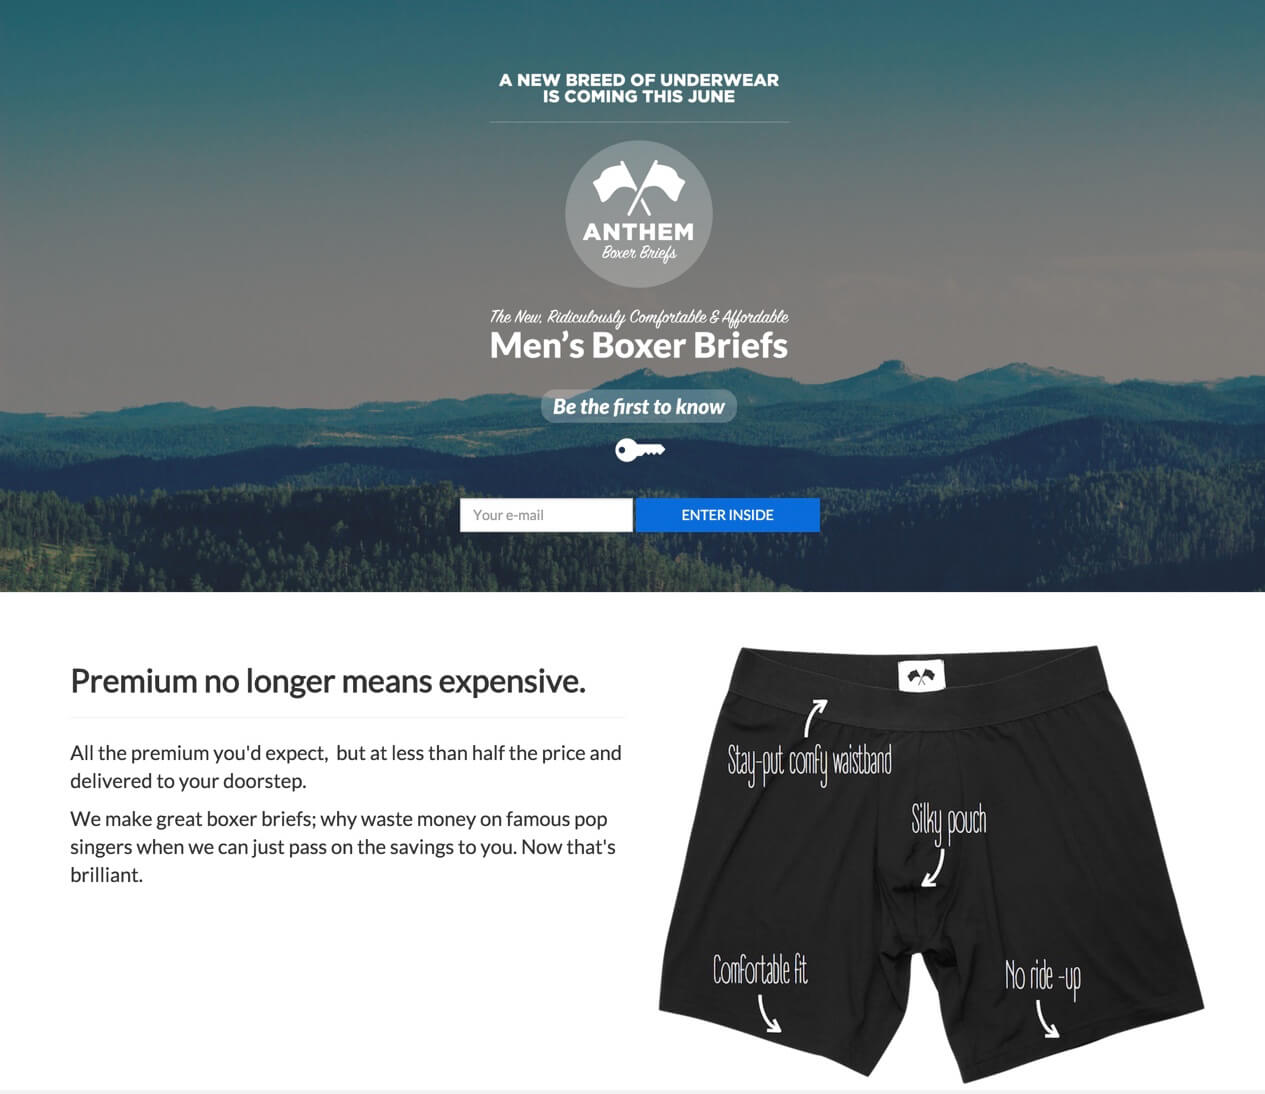 Comfortable Boxers landing page.